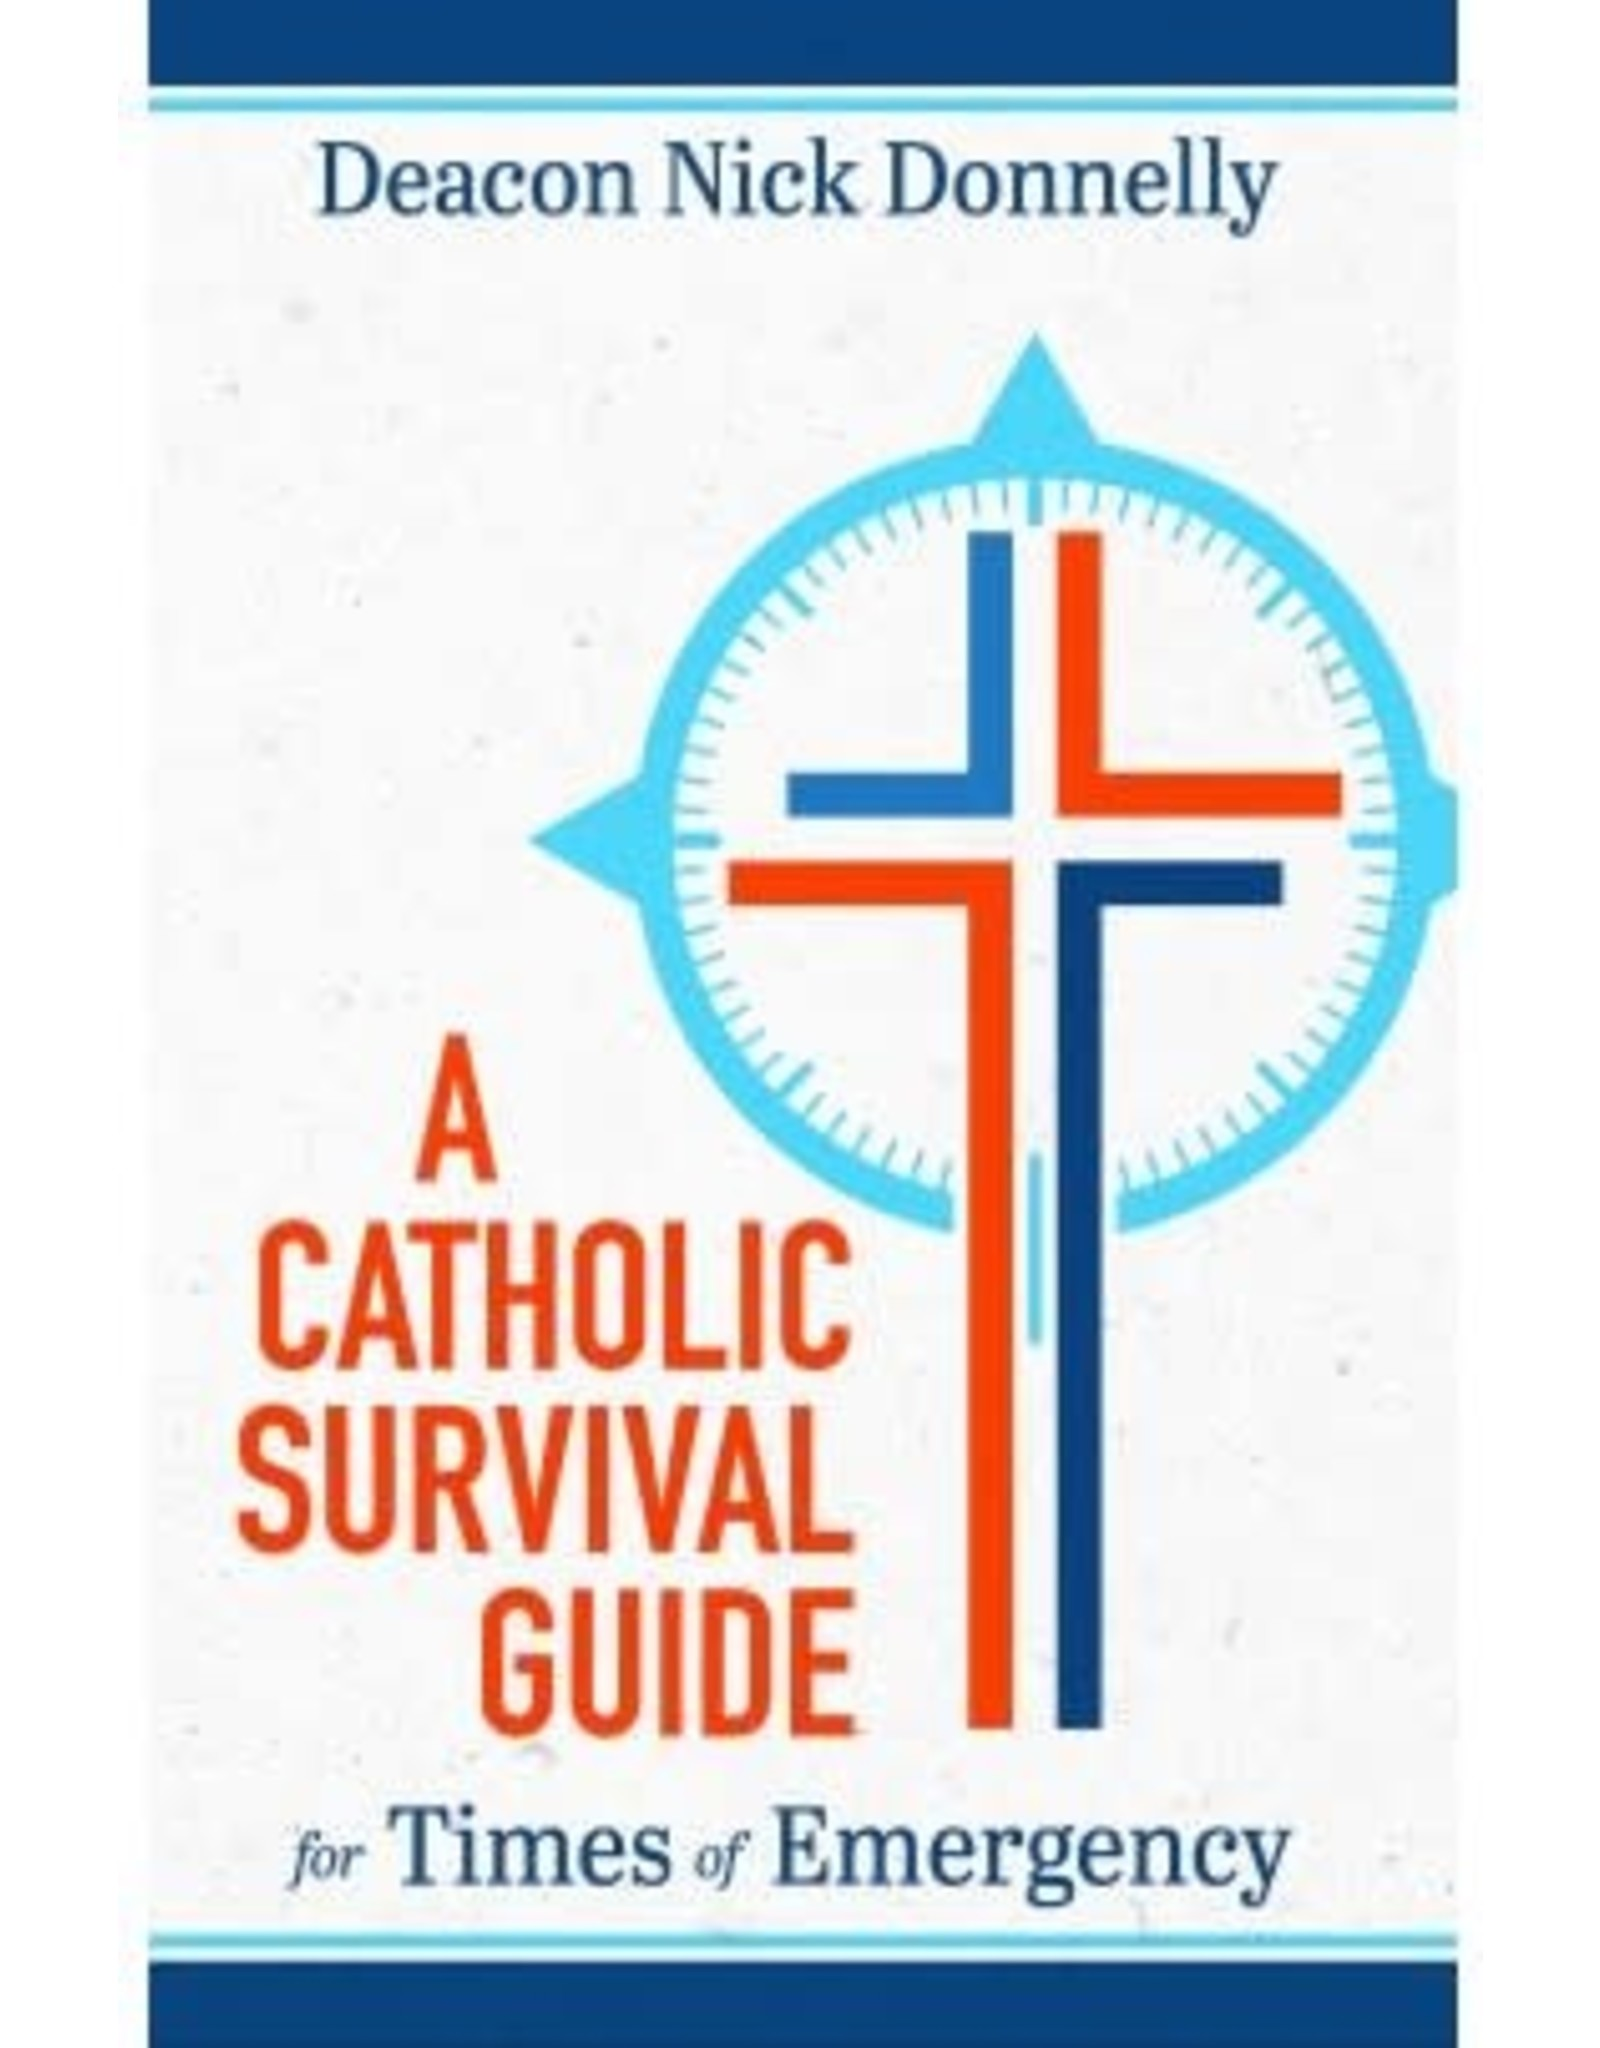 Catholic Survival Guide for Times of Emergency